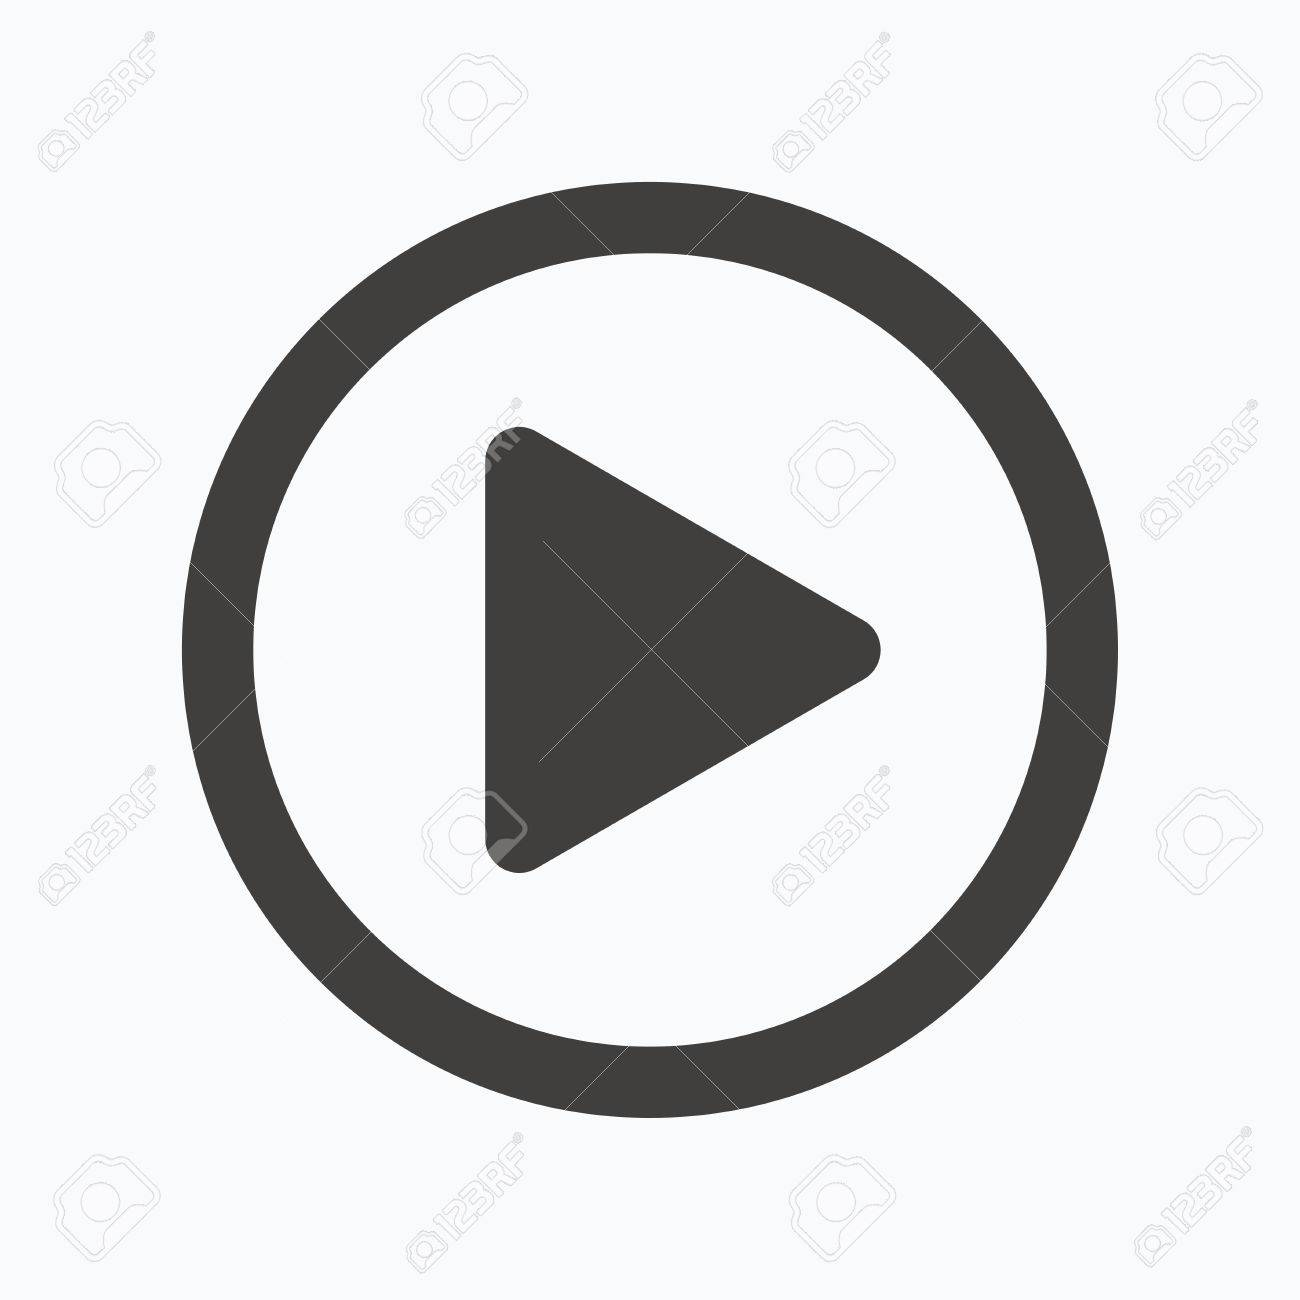 play icon audio or video player symbol gray flat web icon on rh 123rf com video icon vector png video icon vector png